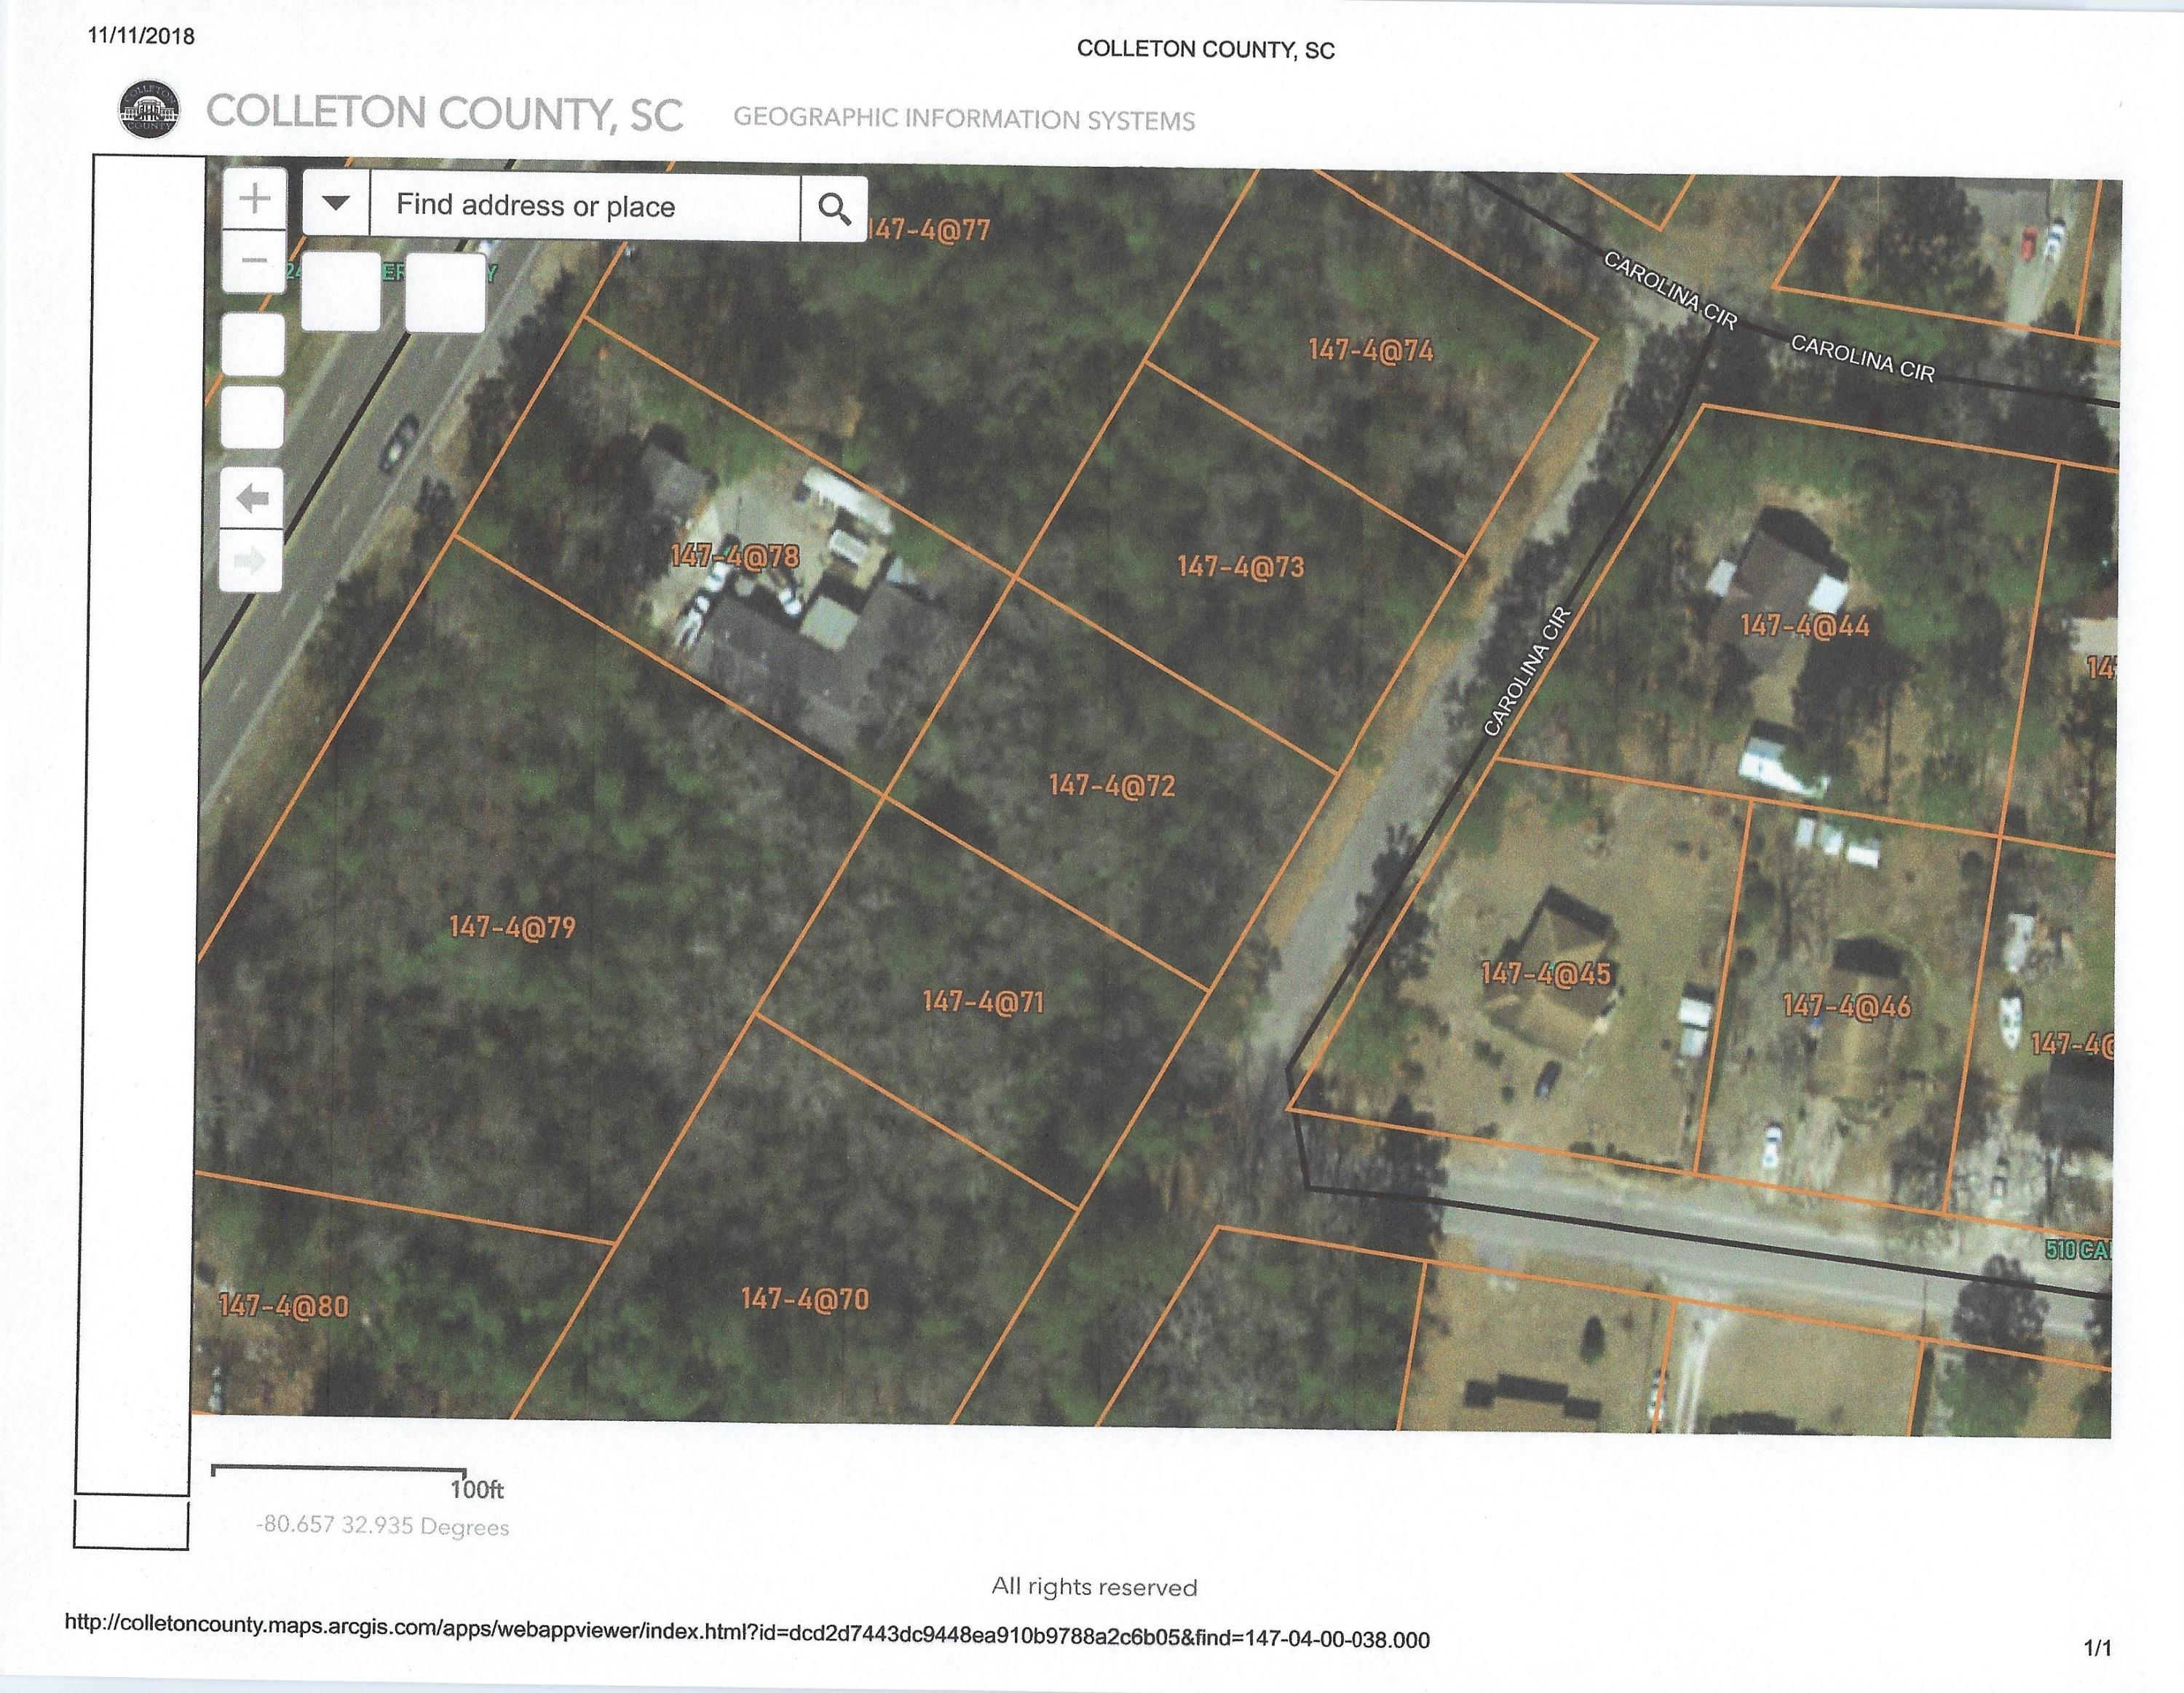 Carolina Circle UNIT Lot 4 Walterboro, SC 29488